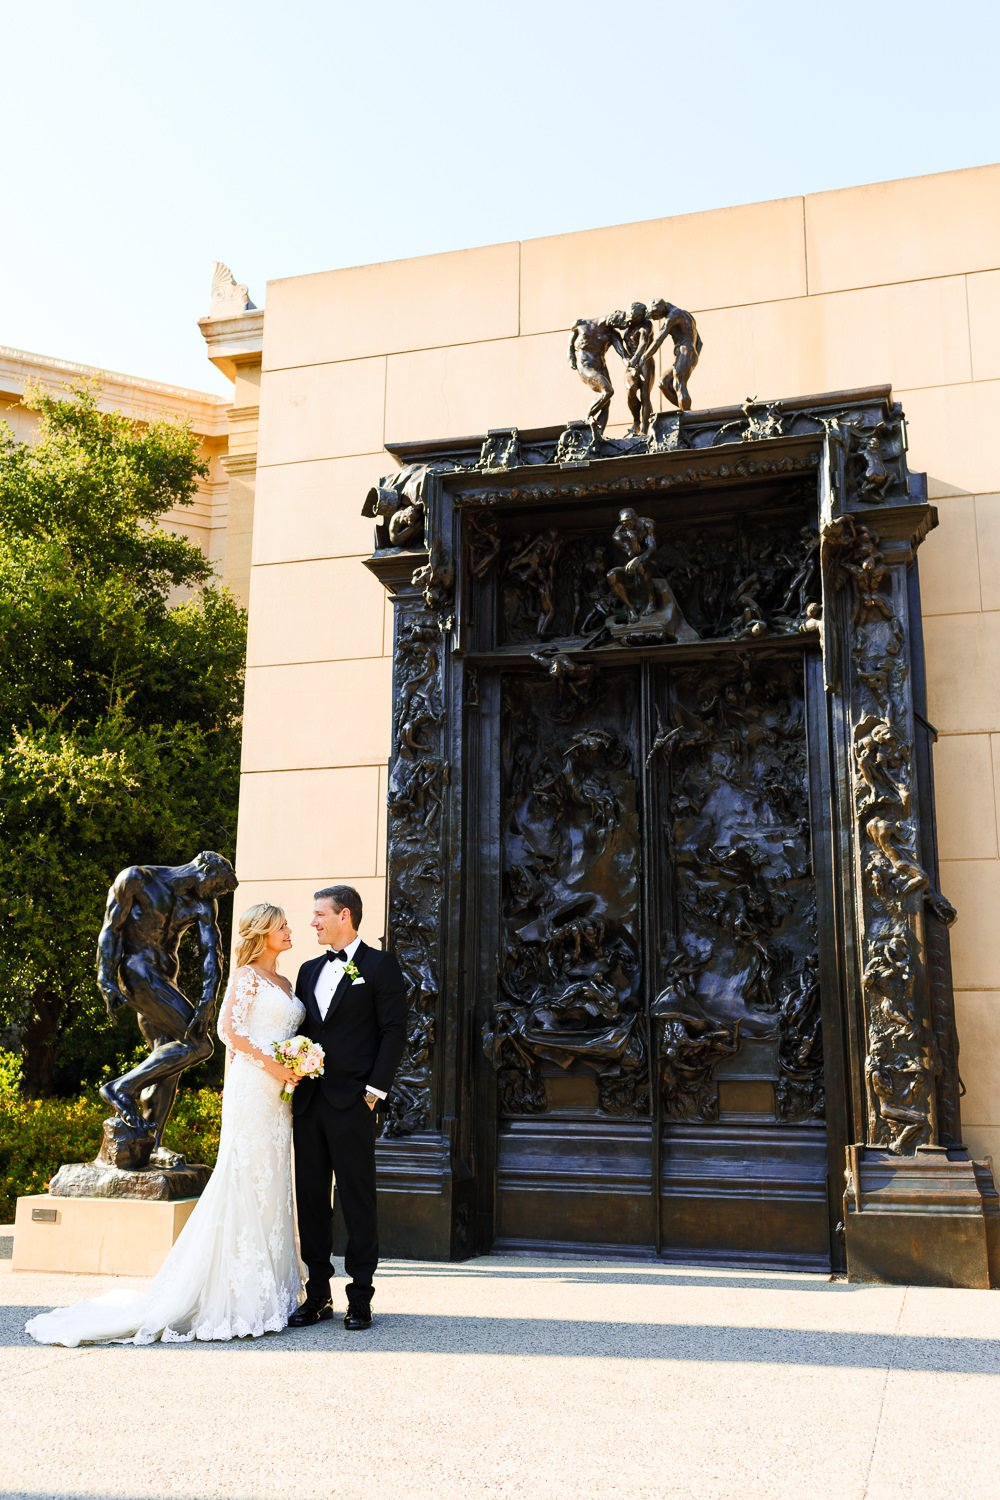 stanford-university-wedding-romantic-portraits-arpit-mehta-san-francisco-photographer-10